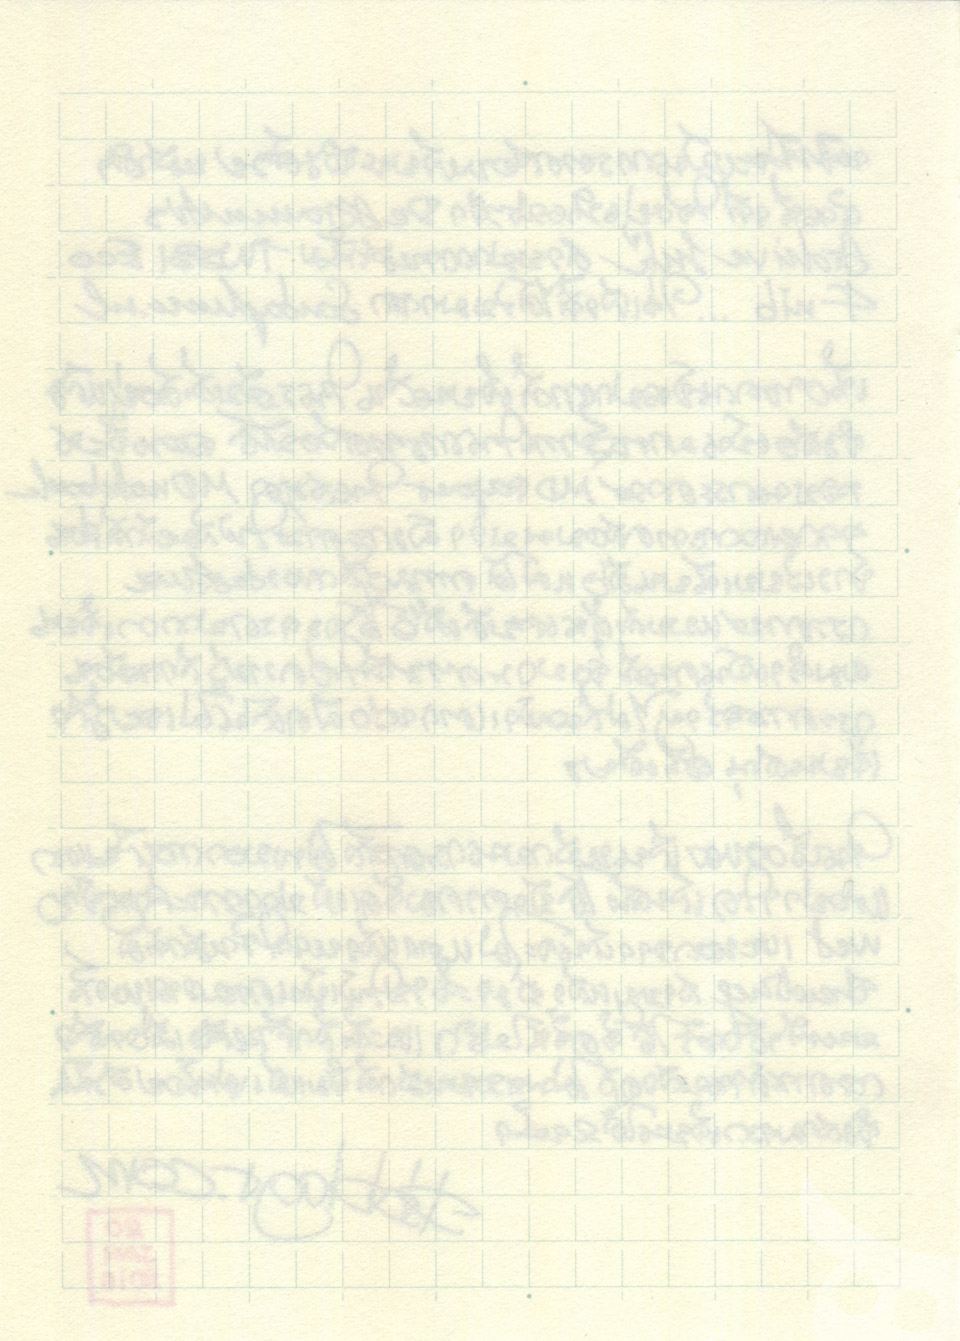 MD-Notebook-Scan-4